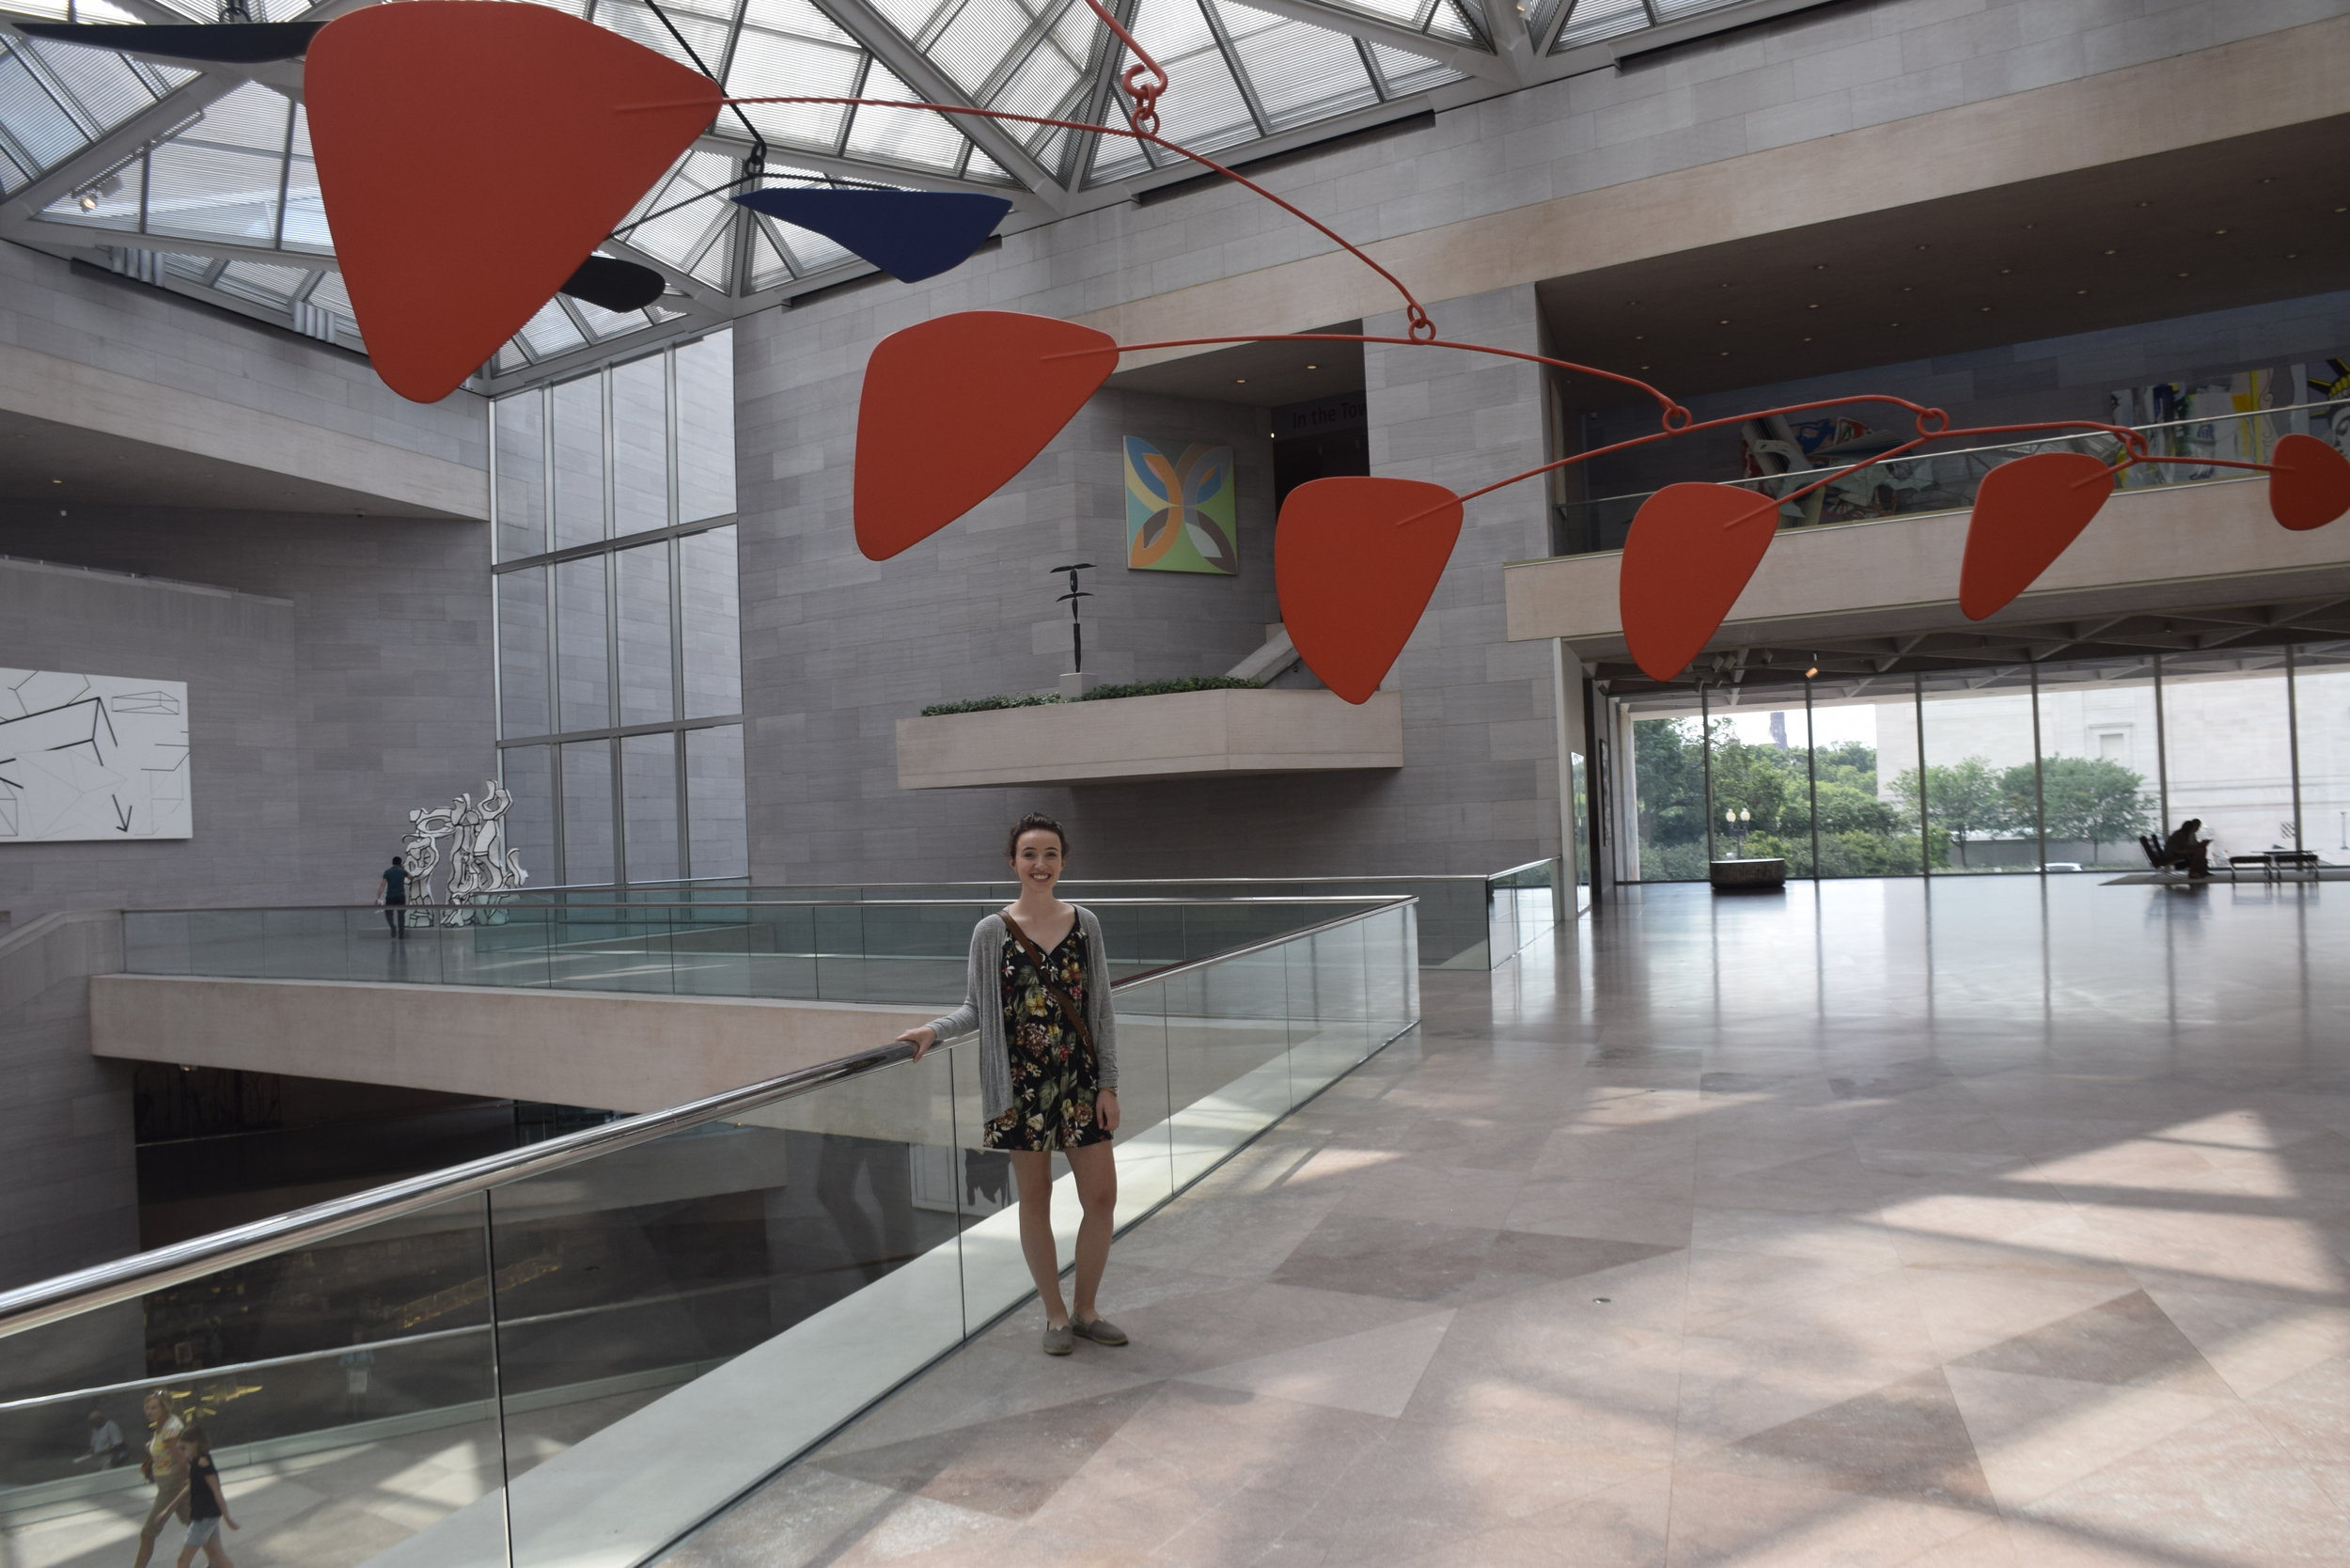 National Gallery of Art - Washington D.C. - A place that has always been an inspiration to me. Standing under one of my favorite artist's piece in a building designed by my favorite architect.